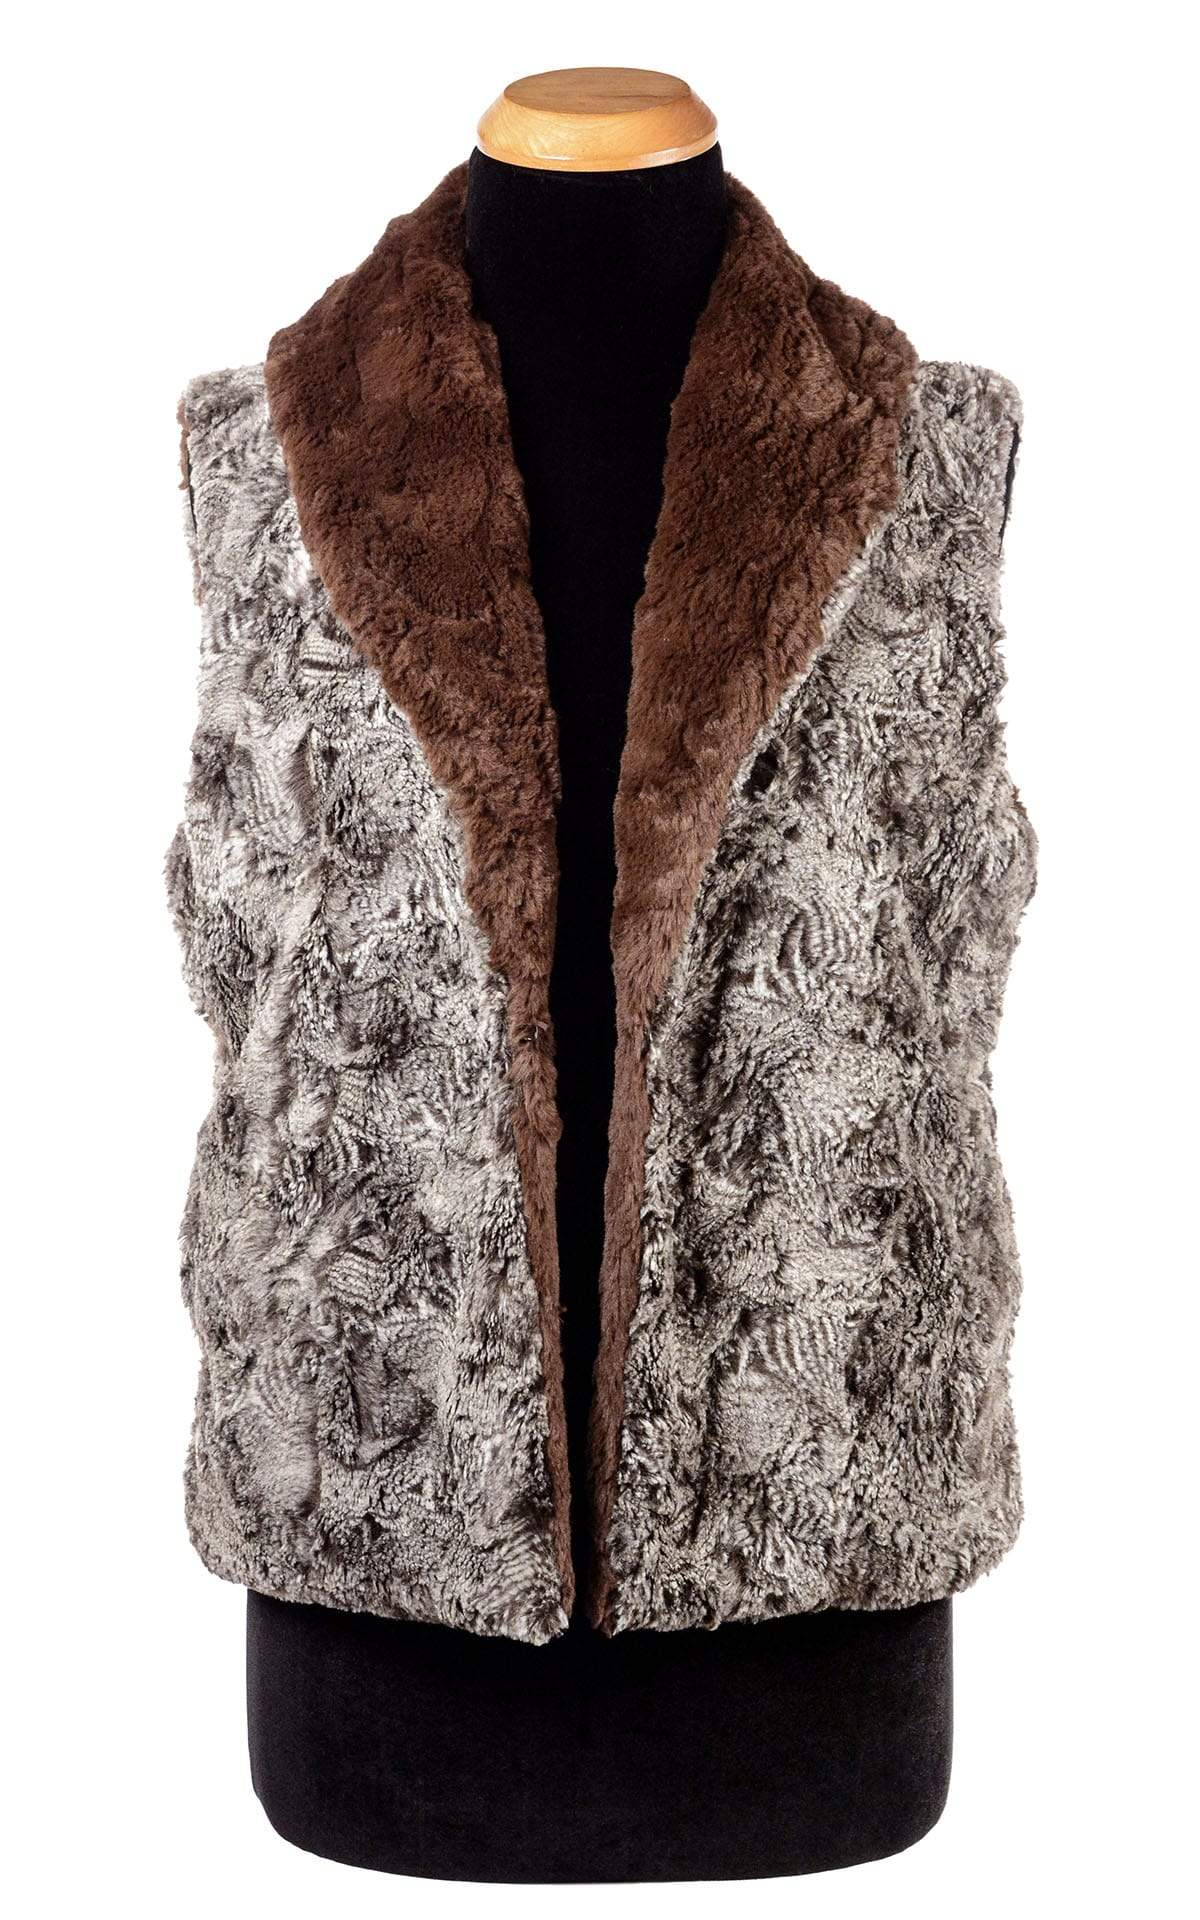 Shawl Collar Vest - Luxury Faux Fur in Praline Swirl with Cuddly Fur (One Medium Praline Left!)